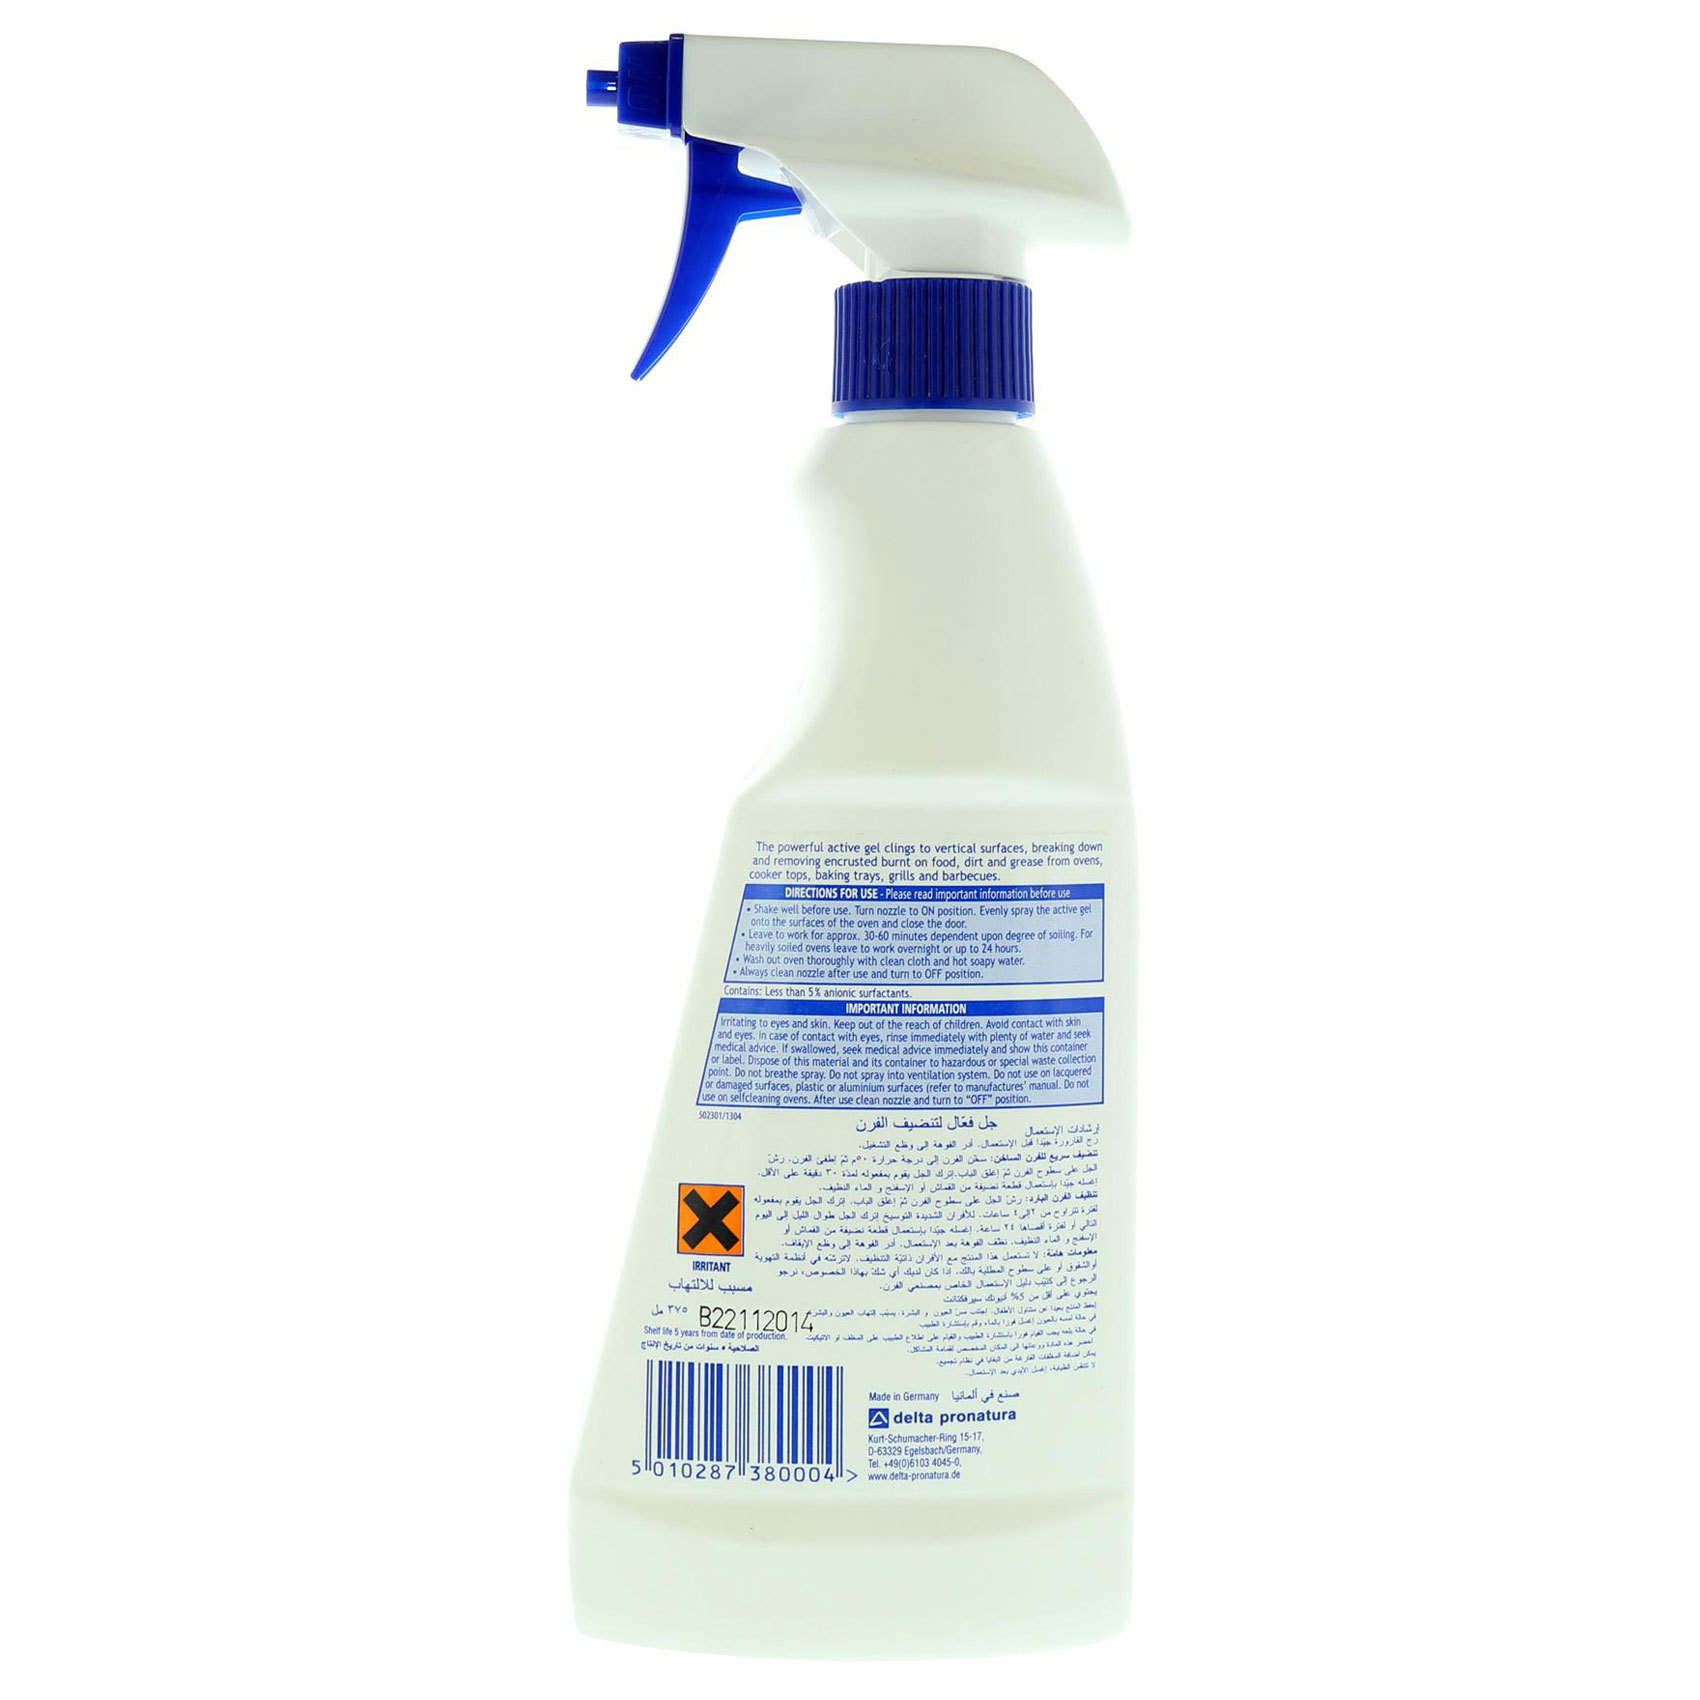 RESCUE OVEN GEL 375ML